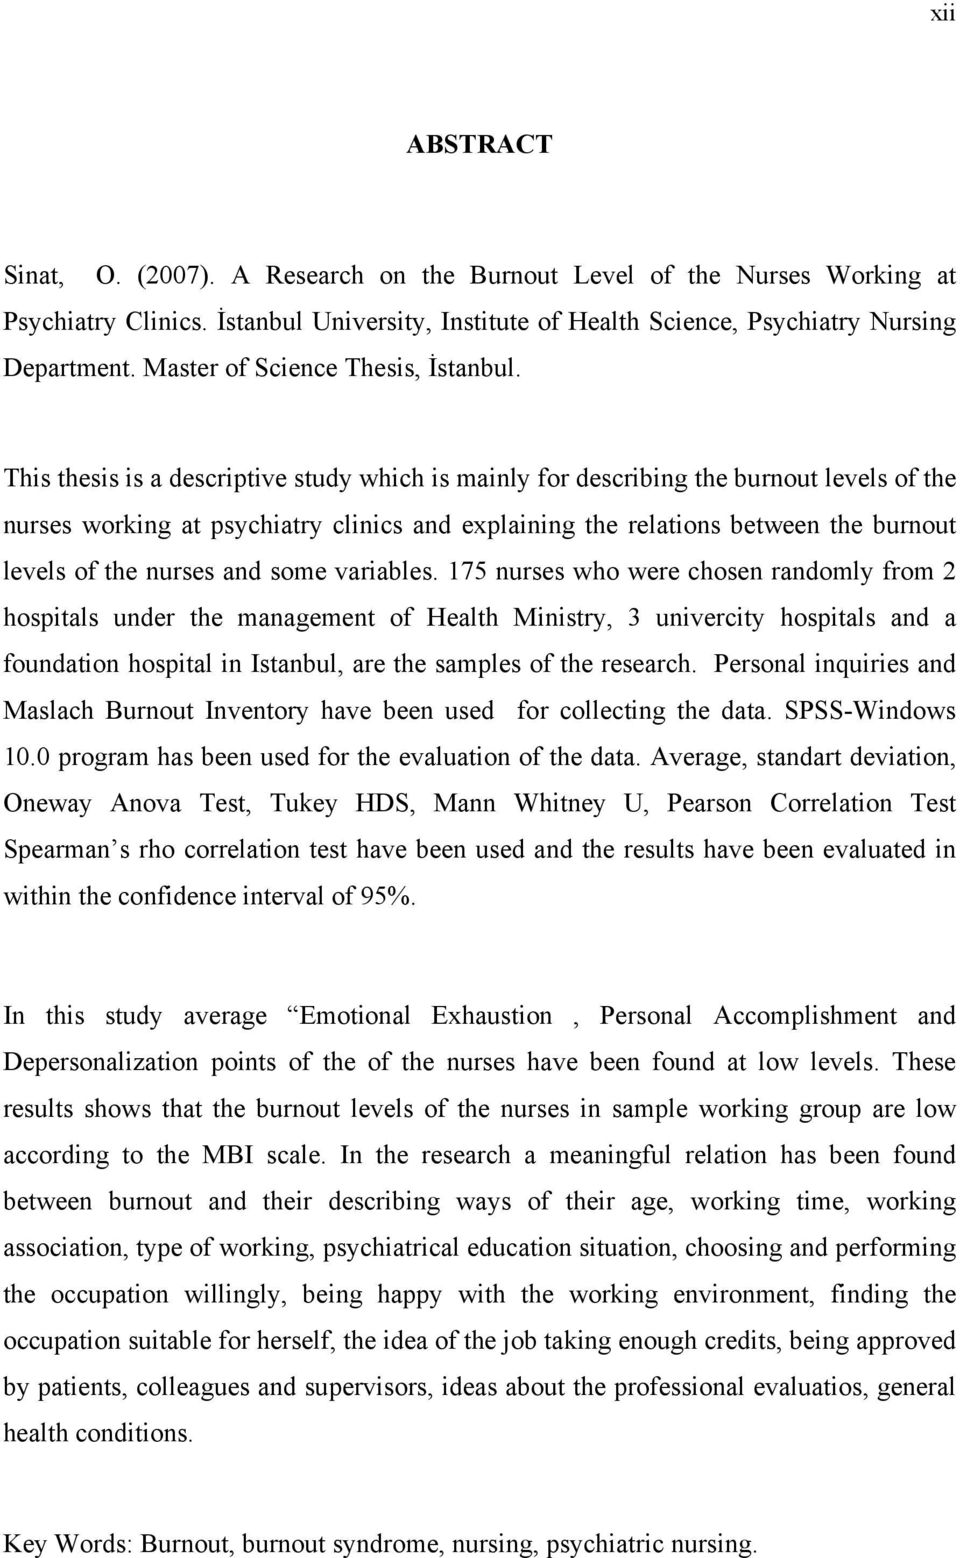 This thesis is a descriptive study which is mainly for describing the burnout levels of the nurses working at psychiatry clinics and explaining the relations between the burnout levels of the nurses